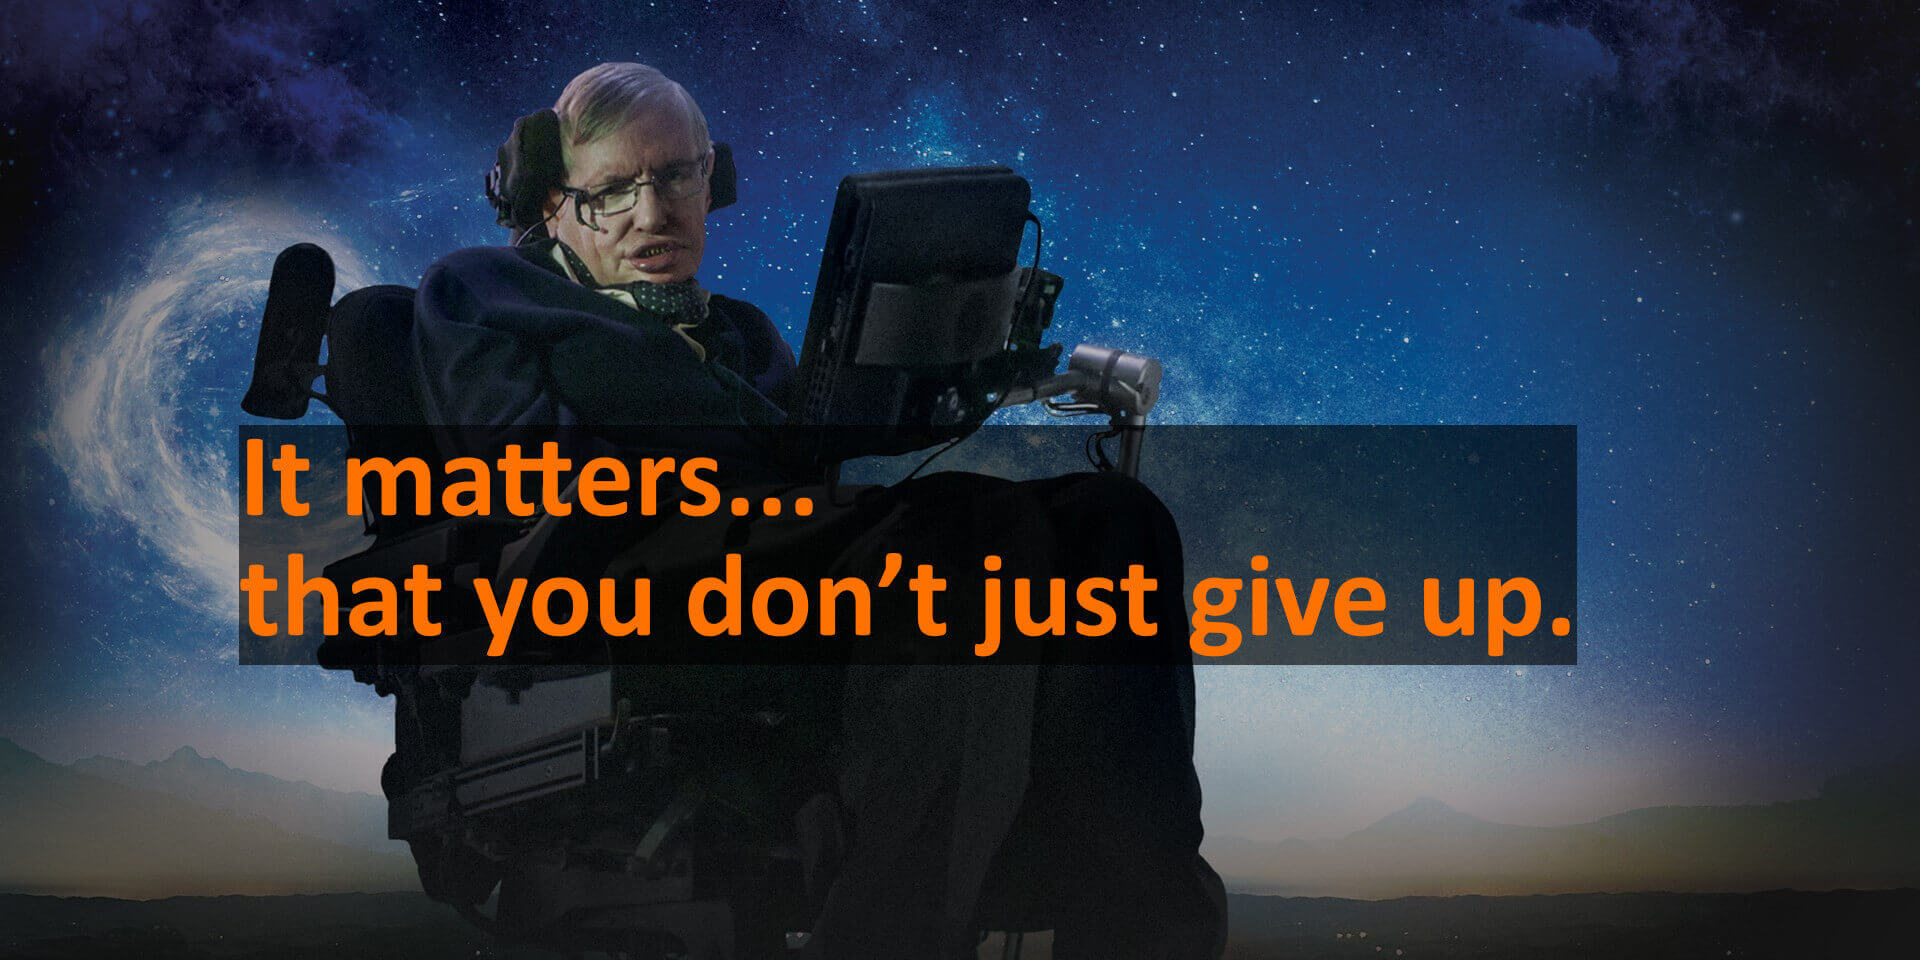 Lessons from the Life and Works of Stephen Hawking